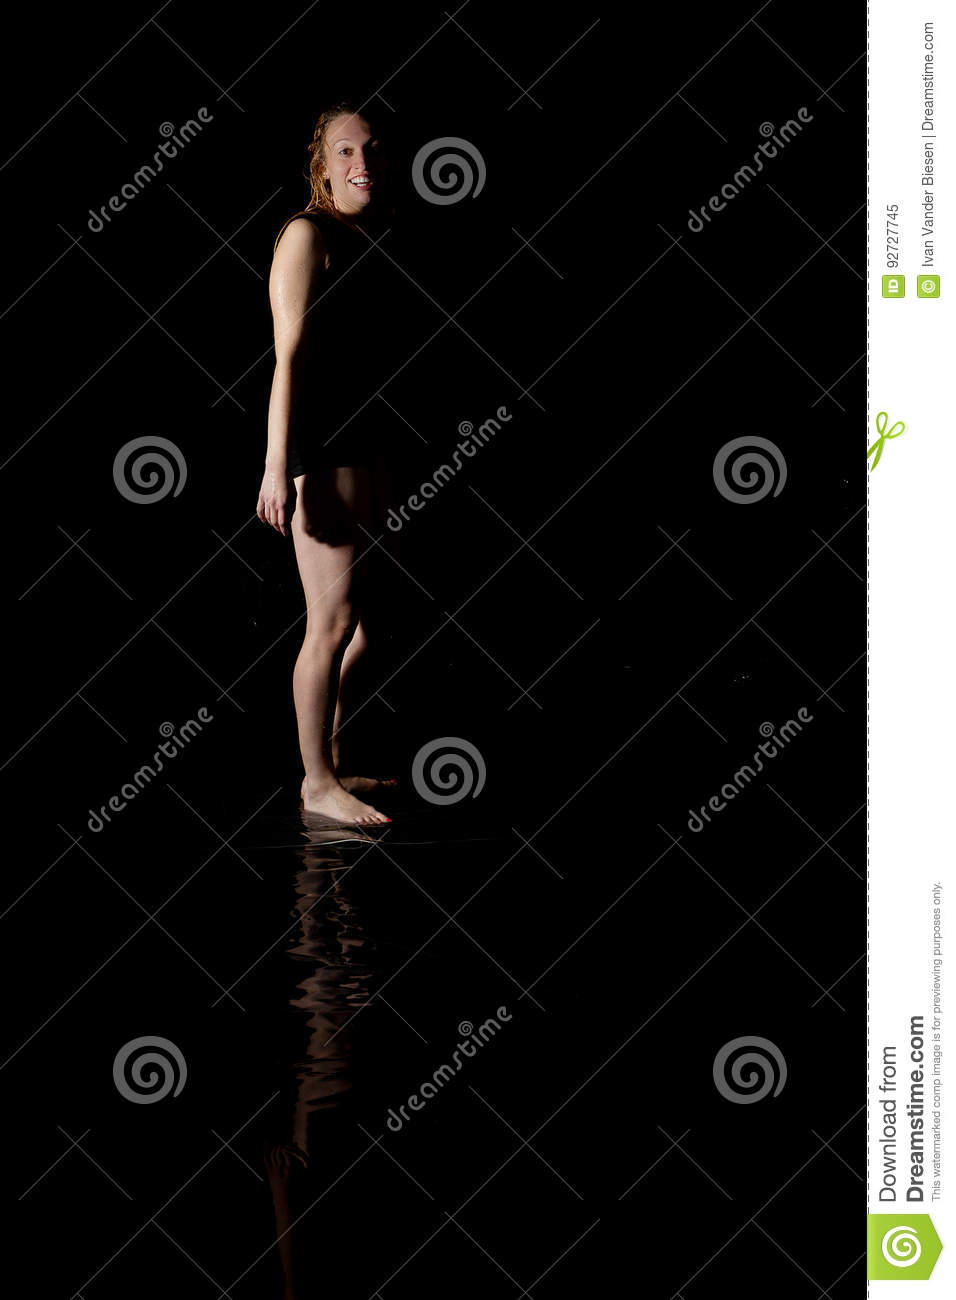 Wet woman black background